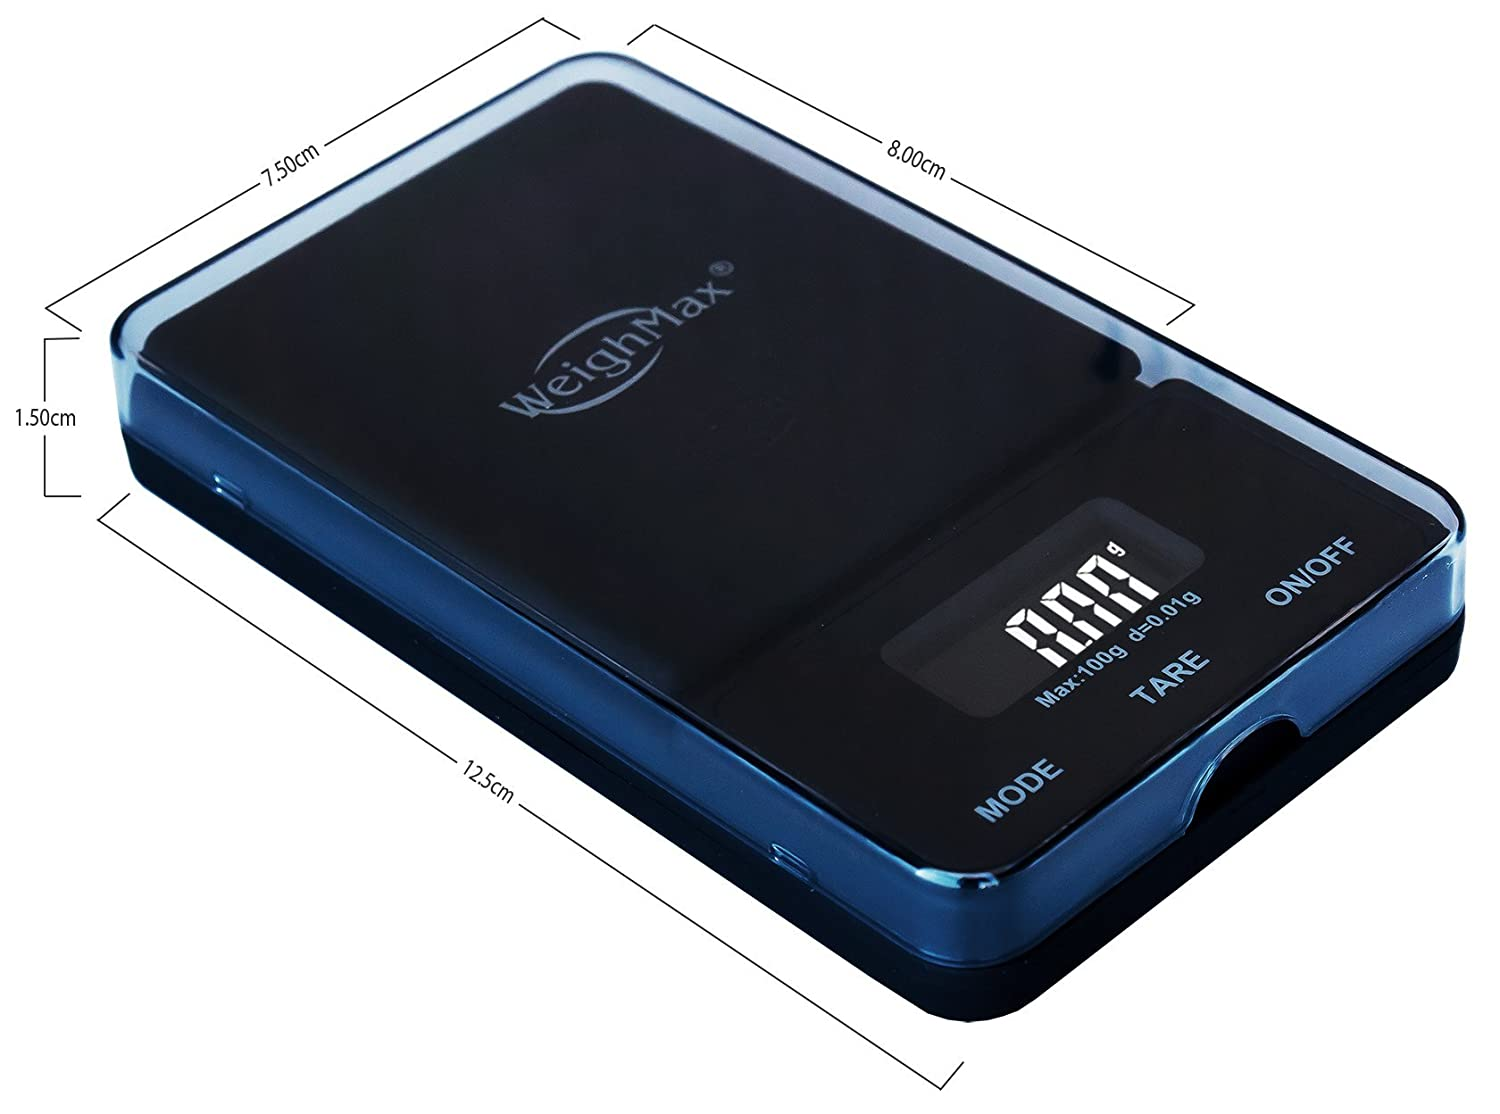 Amazon.com: Weighmax NJ100-BLACK Dream Series Digital Pocket Scale, 100 by 0.01 g, Black: Kitchen & Dining